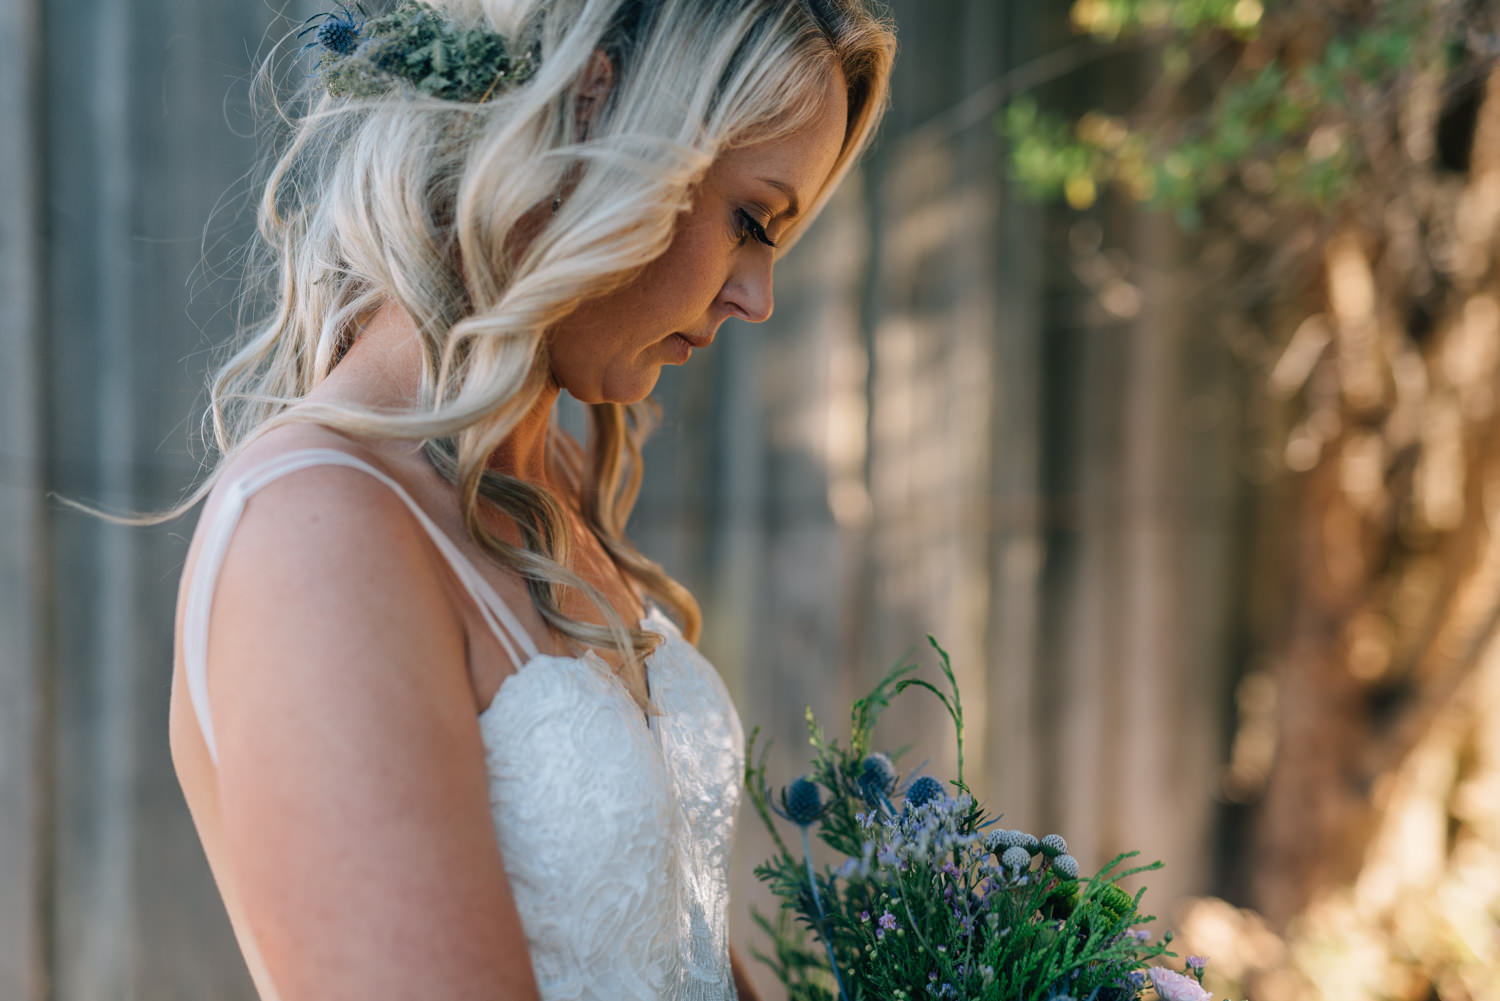 Launceston-Wedding-Photographer-77.jpg